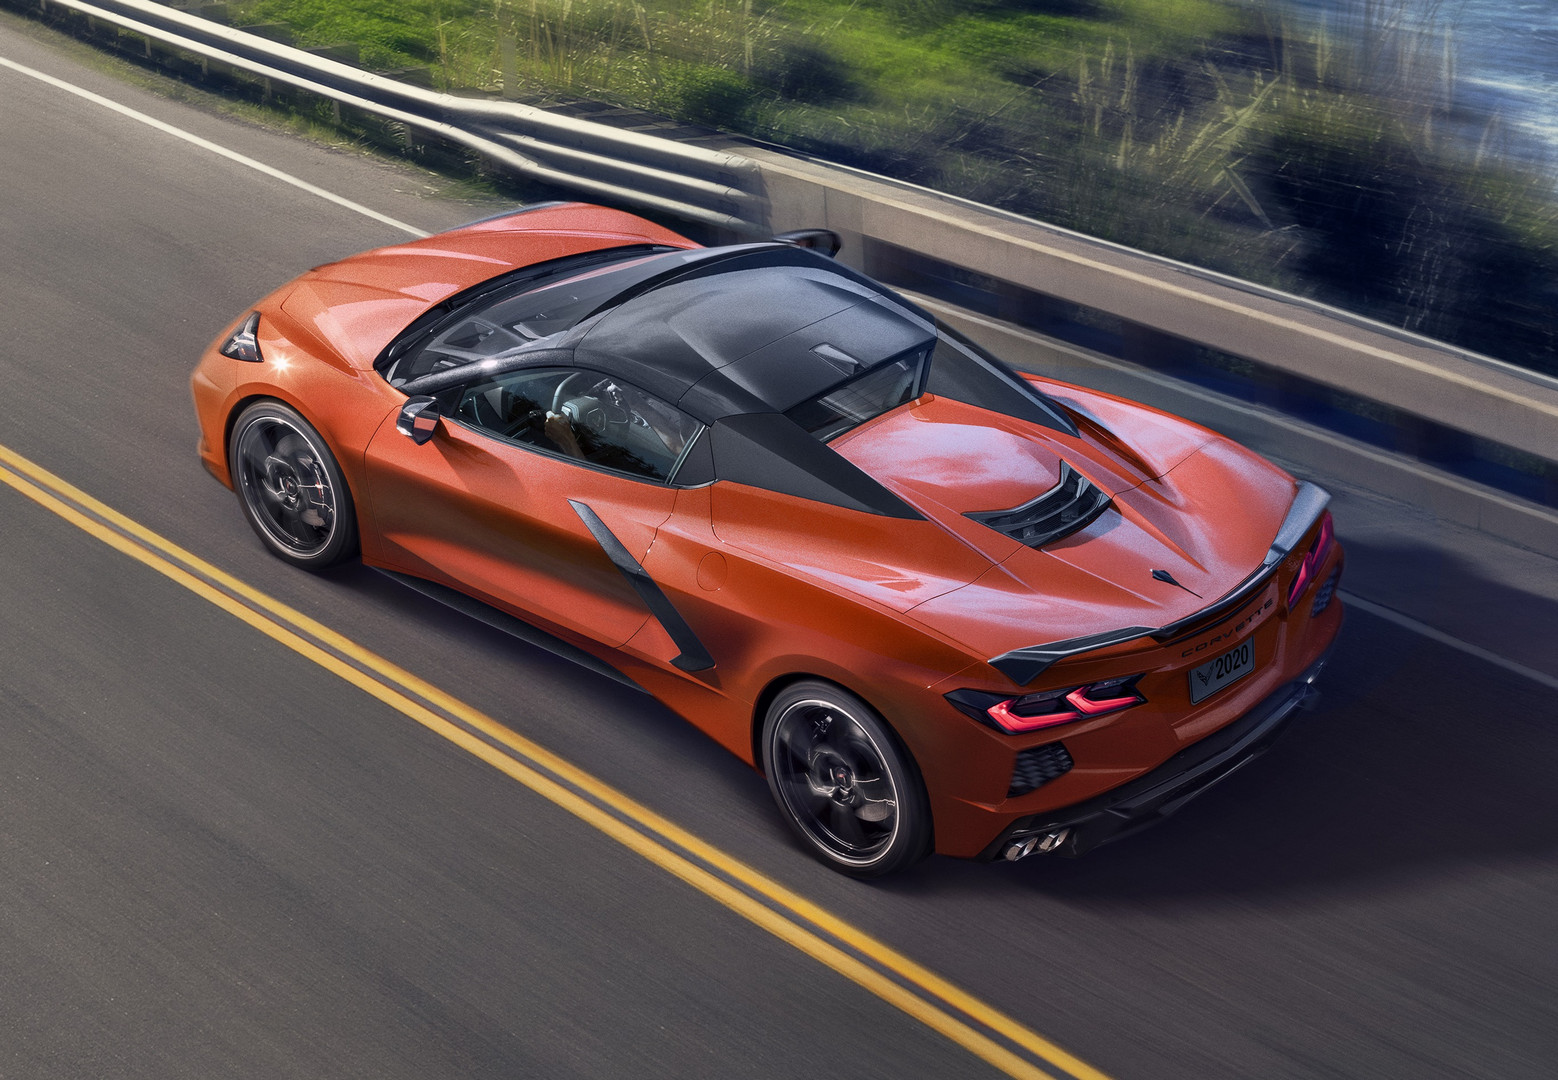 2020 Corvette Convertible Orange